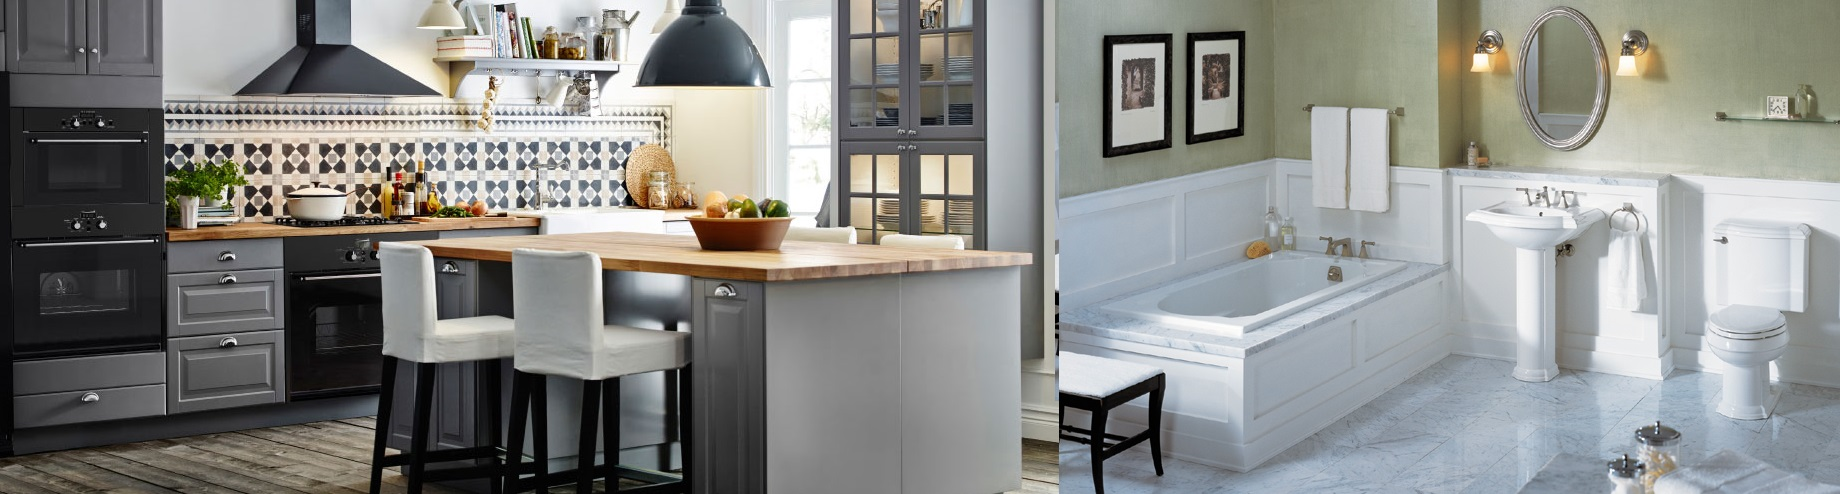 Fha faq bedroom no closet - Kitchens Are Easy To Identify There S Usually A Set Of Appliances Counters Cupboards Faucets We Don T Really Need To Explain What A Kitchen Is